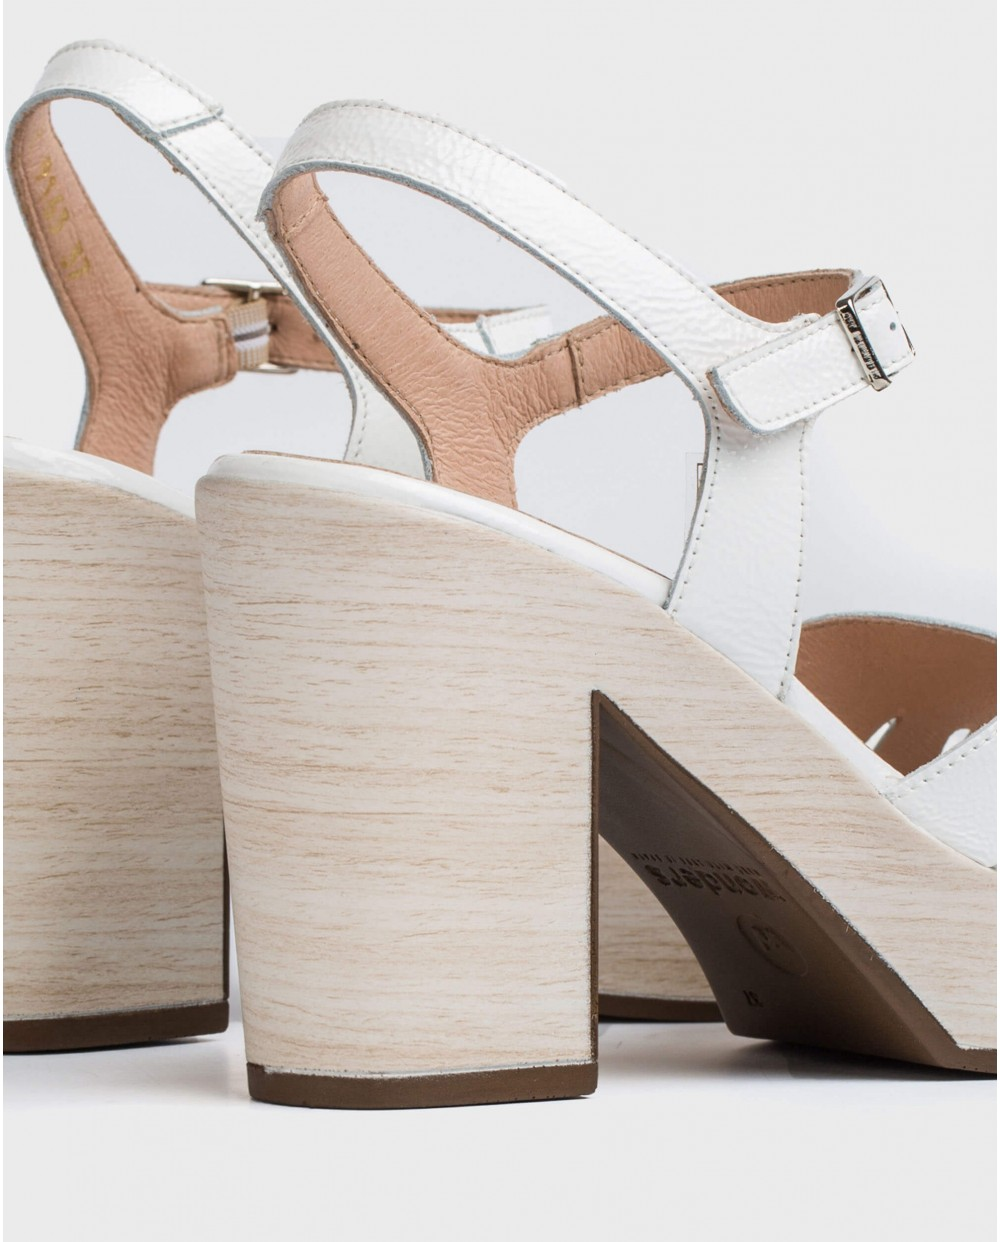 Wonders-Sandals-Sandal with side cut out detail